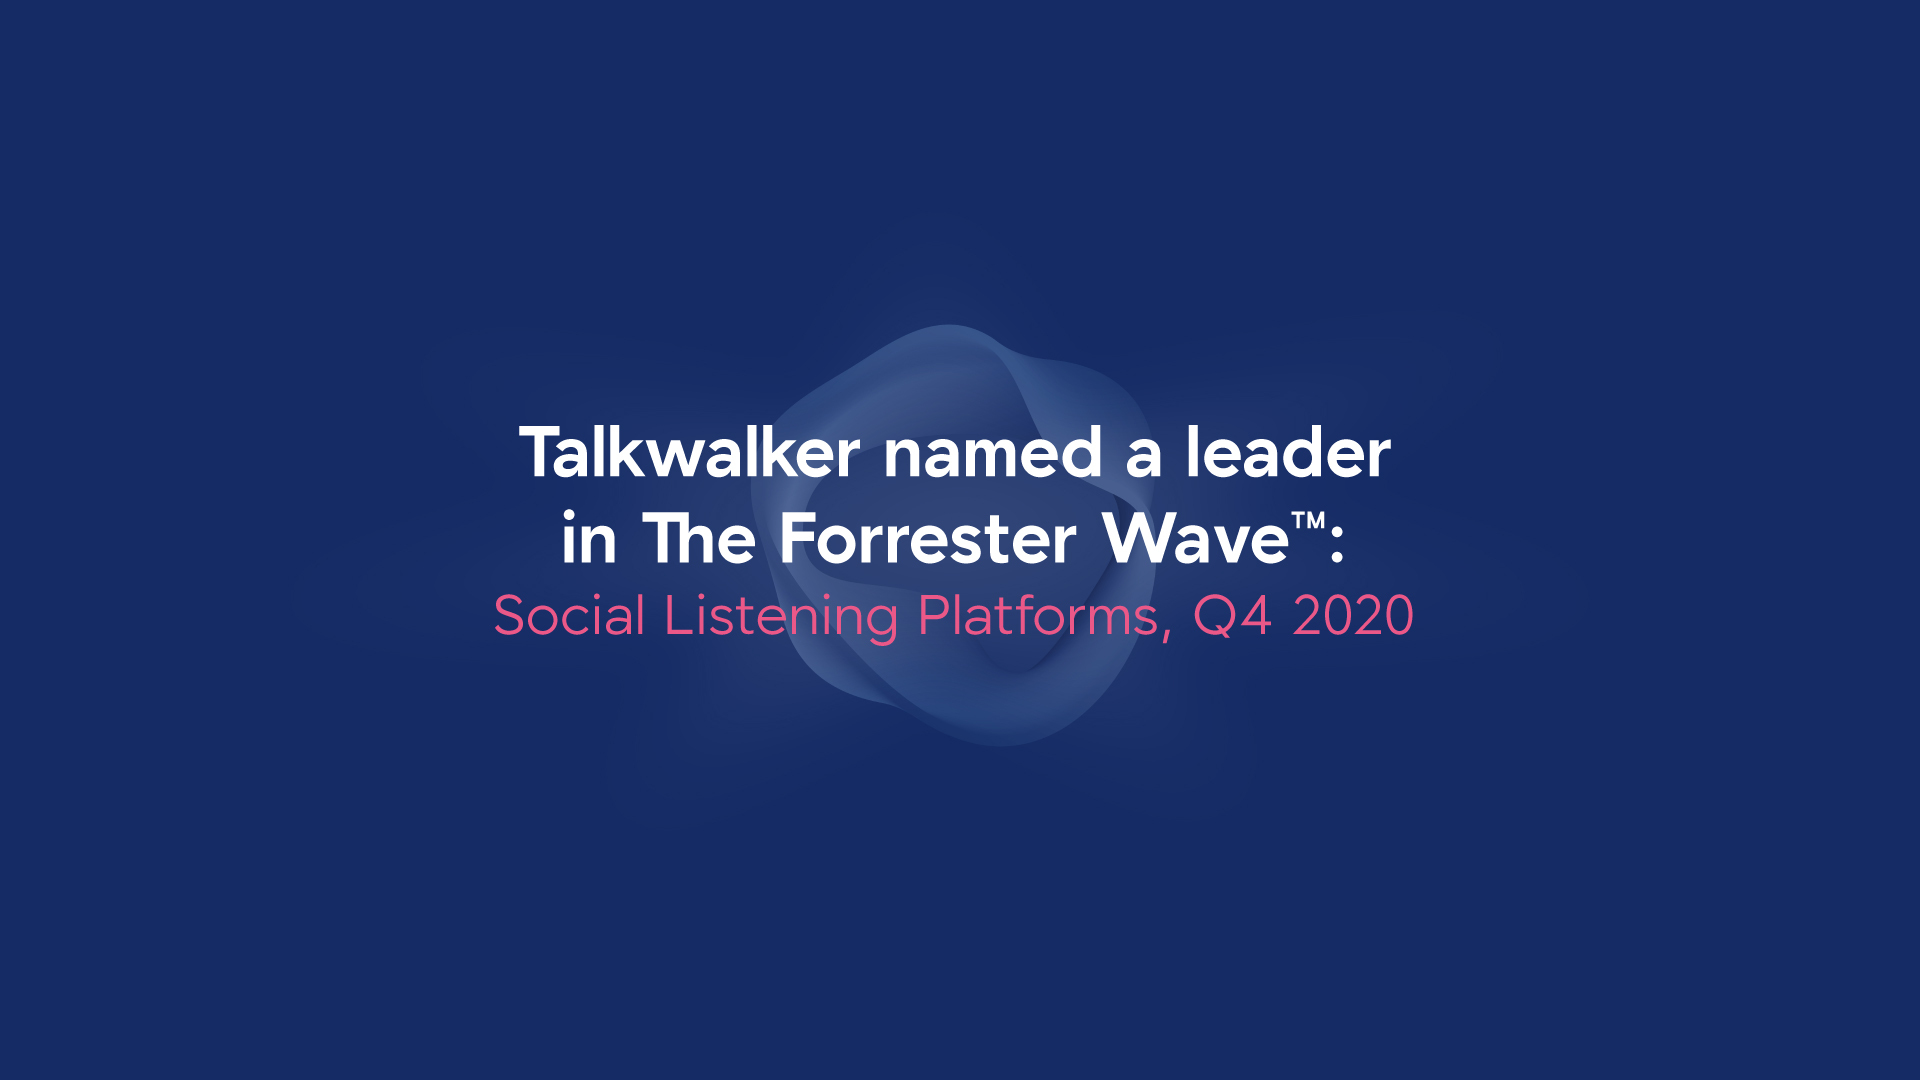 The Forrester Wave™: Social Listening Platforms, Q4 2020